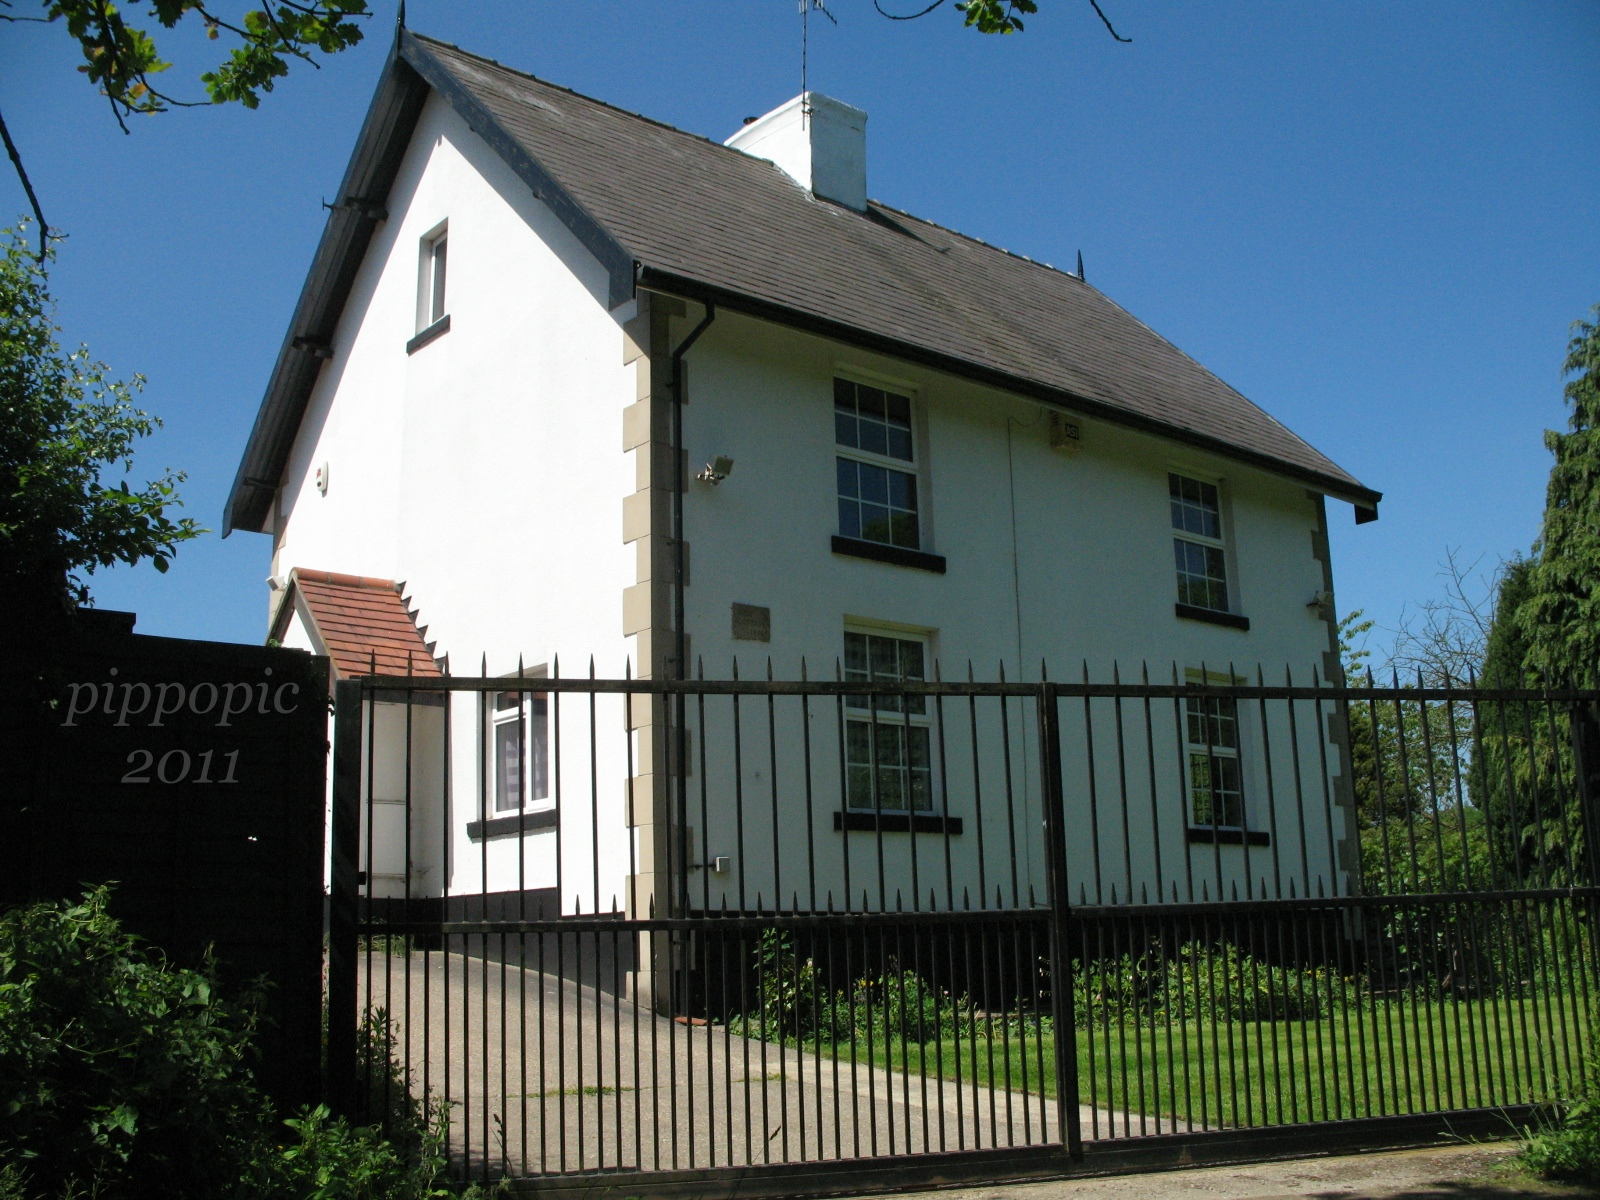 Rose Cottage, Cat Lane, Meersbrook